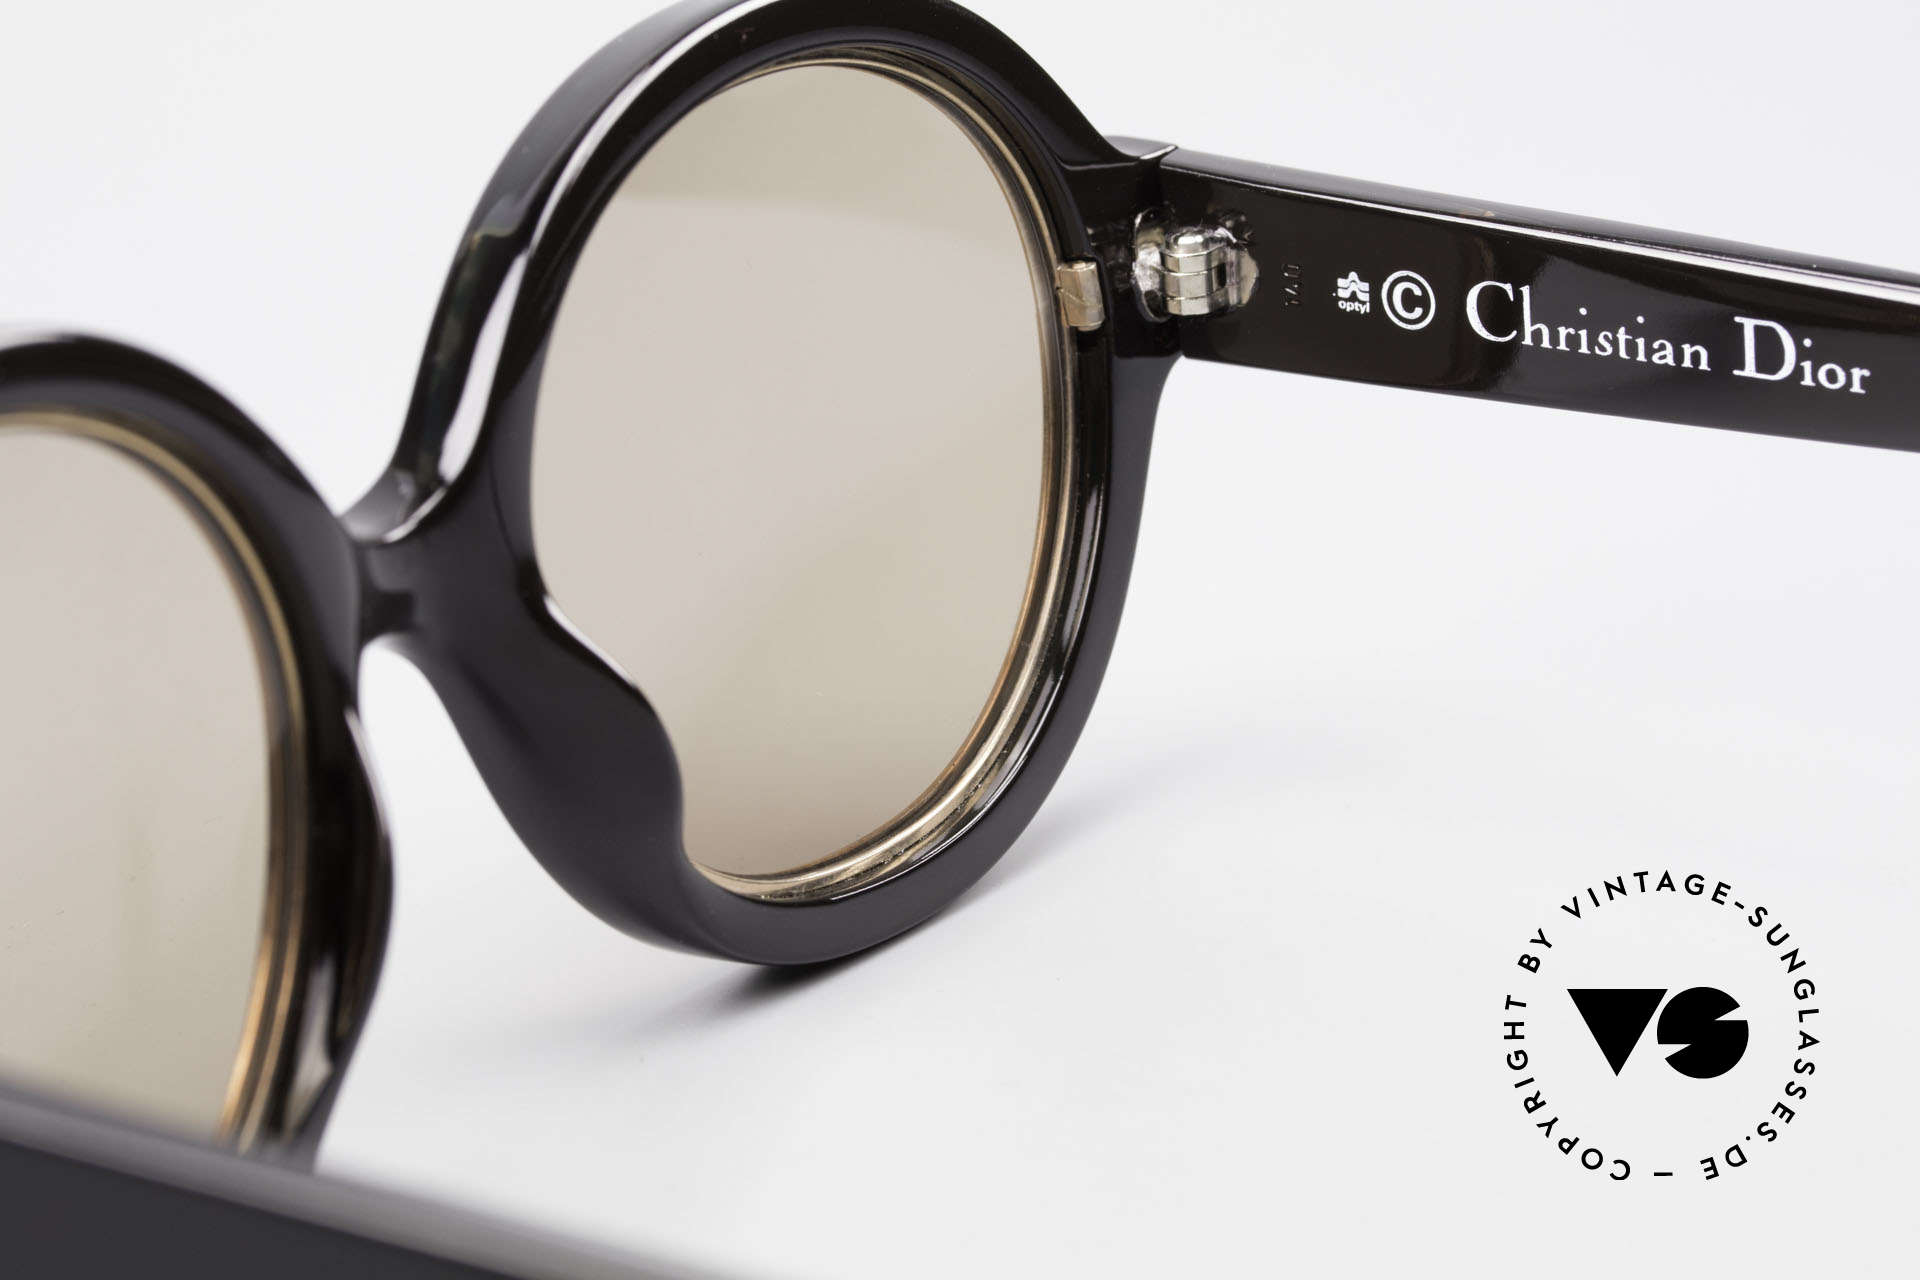 Christian Dior 2446 Round Ladies Sunglasses 80's, NO retro sunglasses, but an app. 35 years old unicum, Made for Women